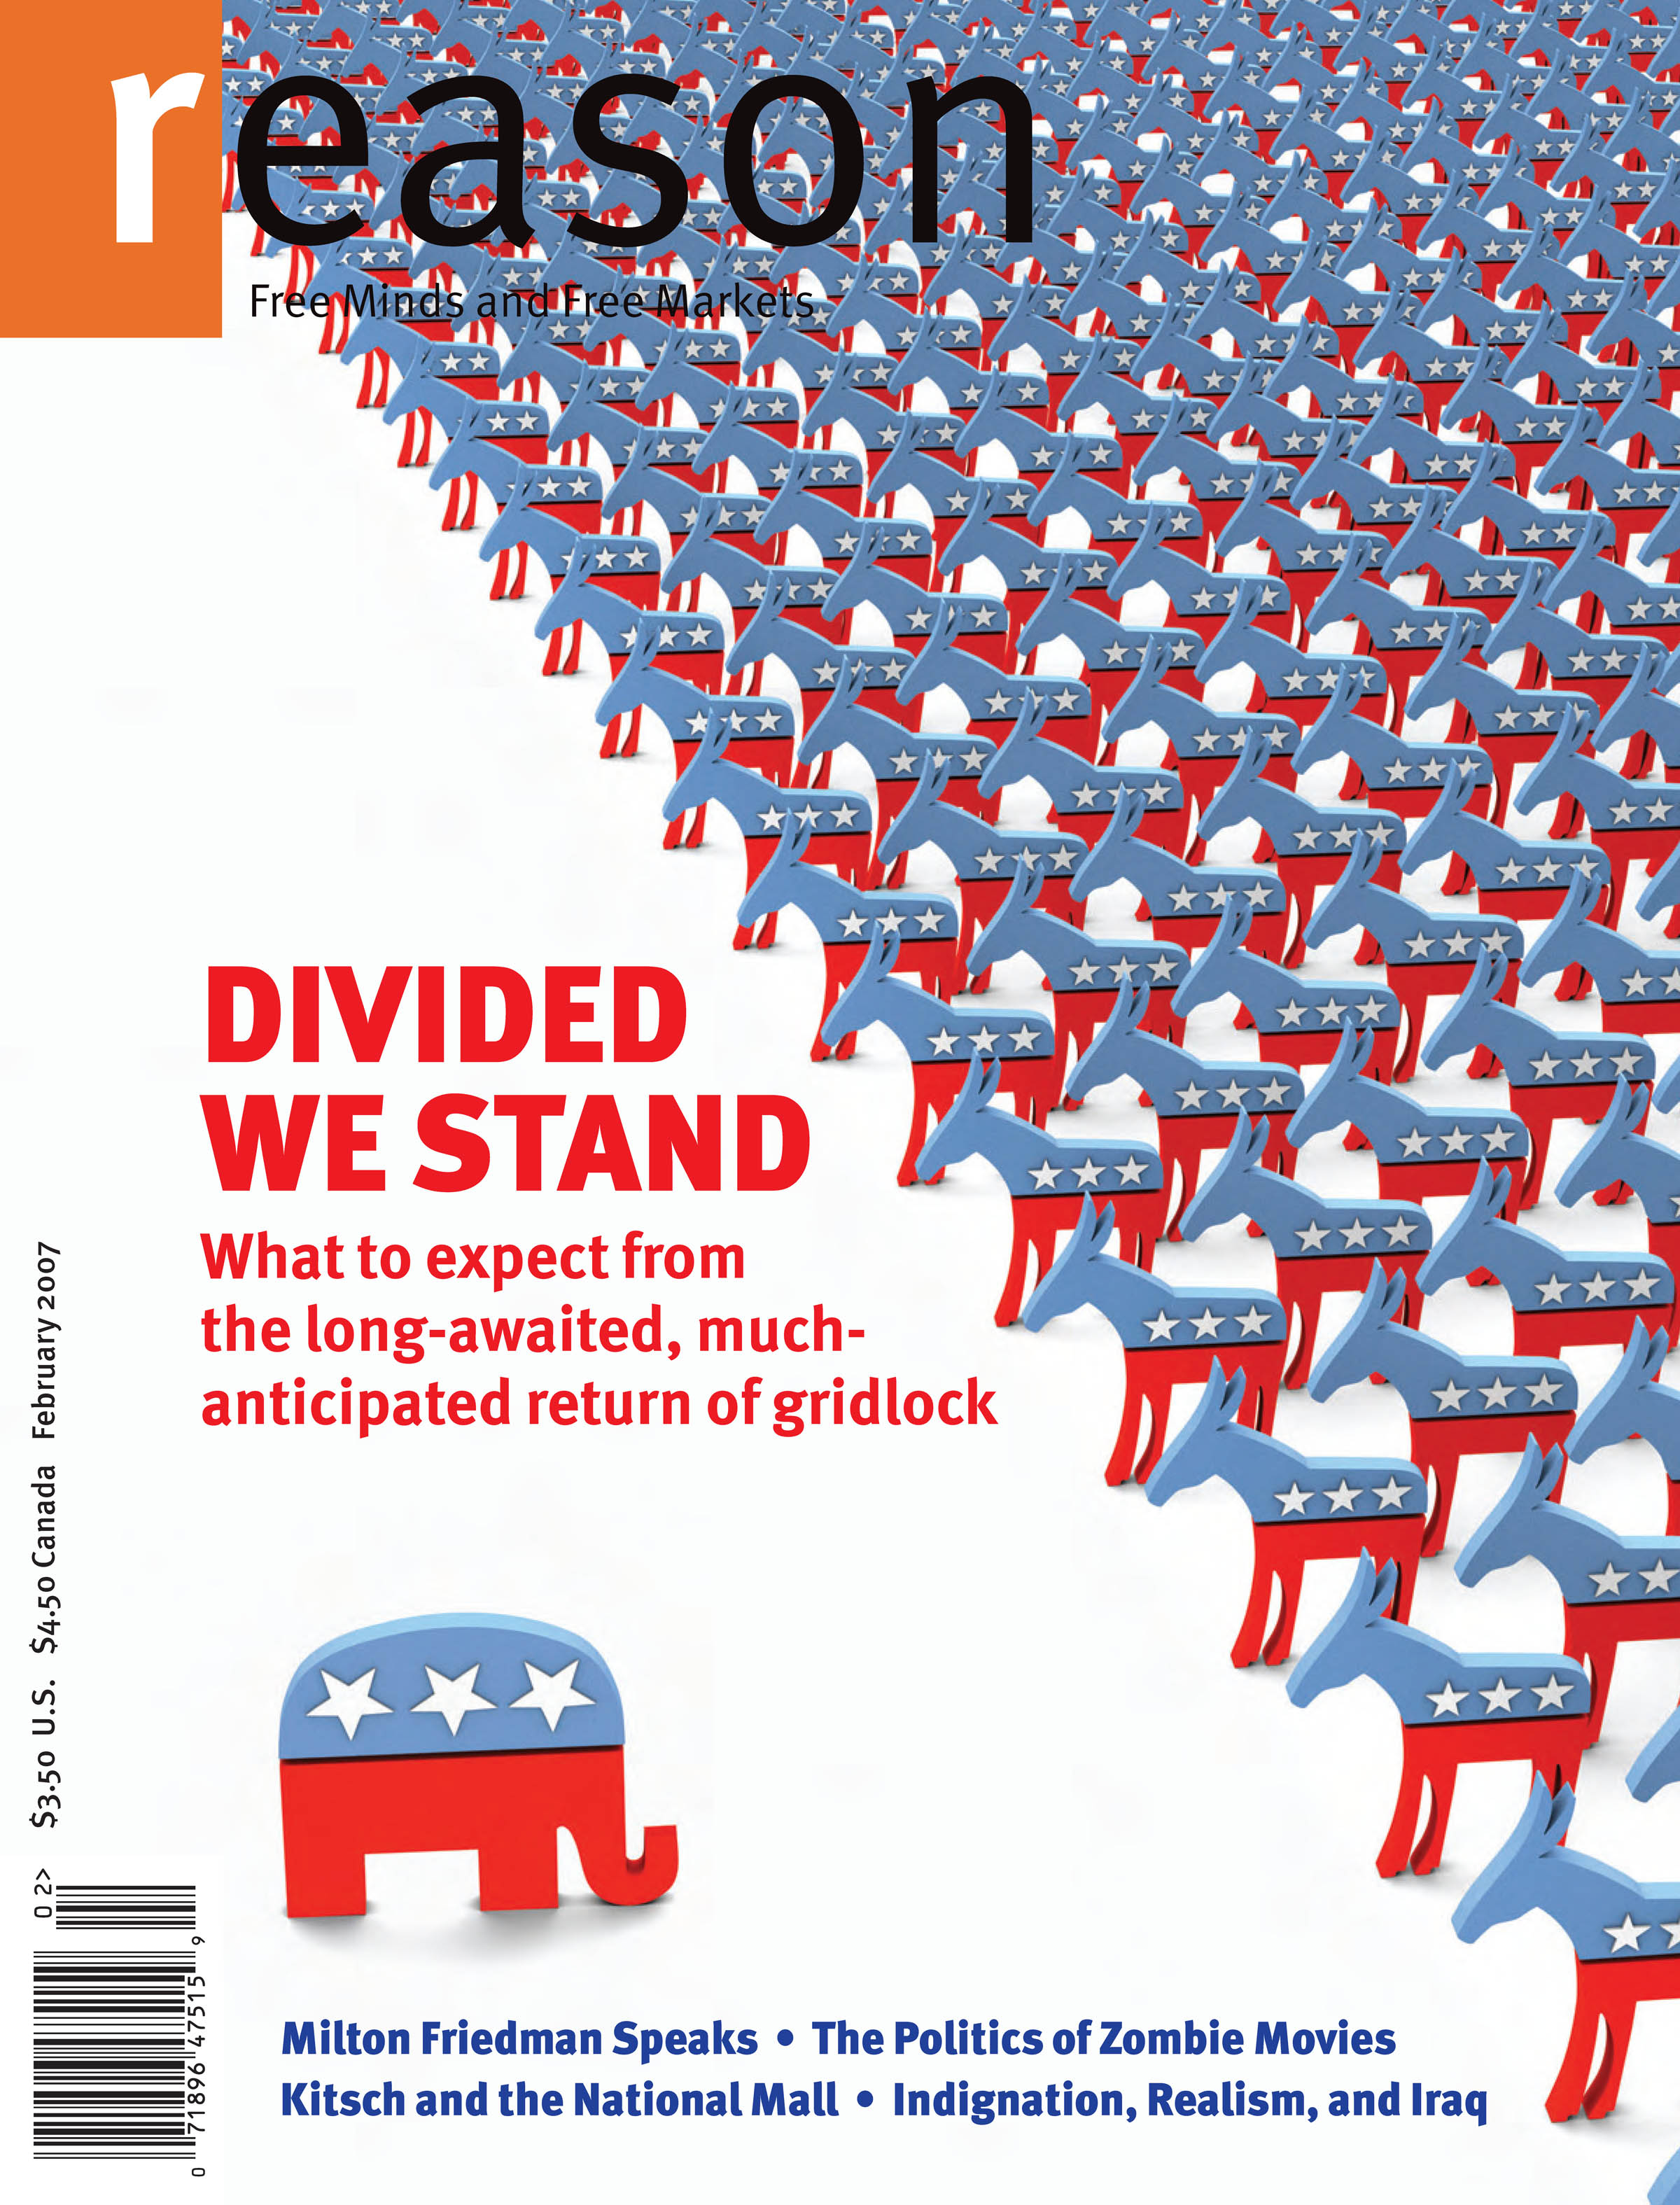 Reason Magazine, February 2007 cover image